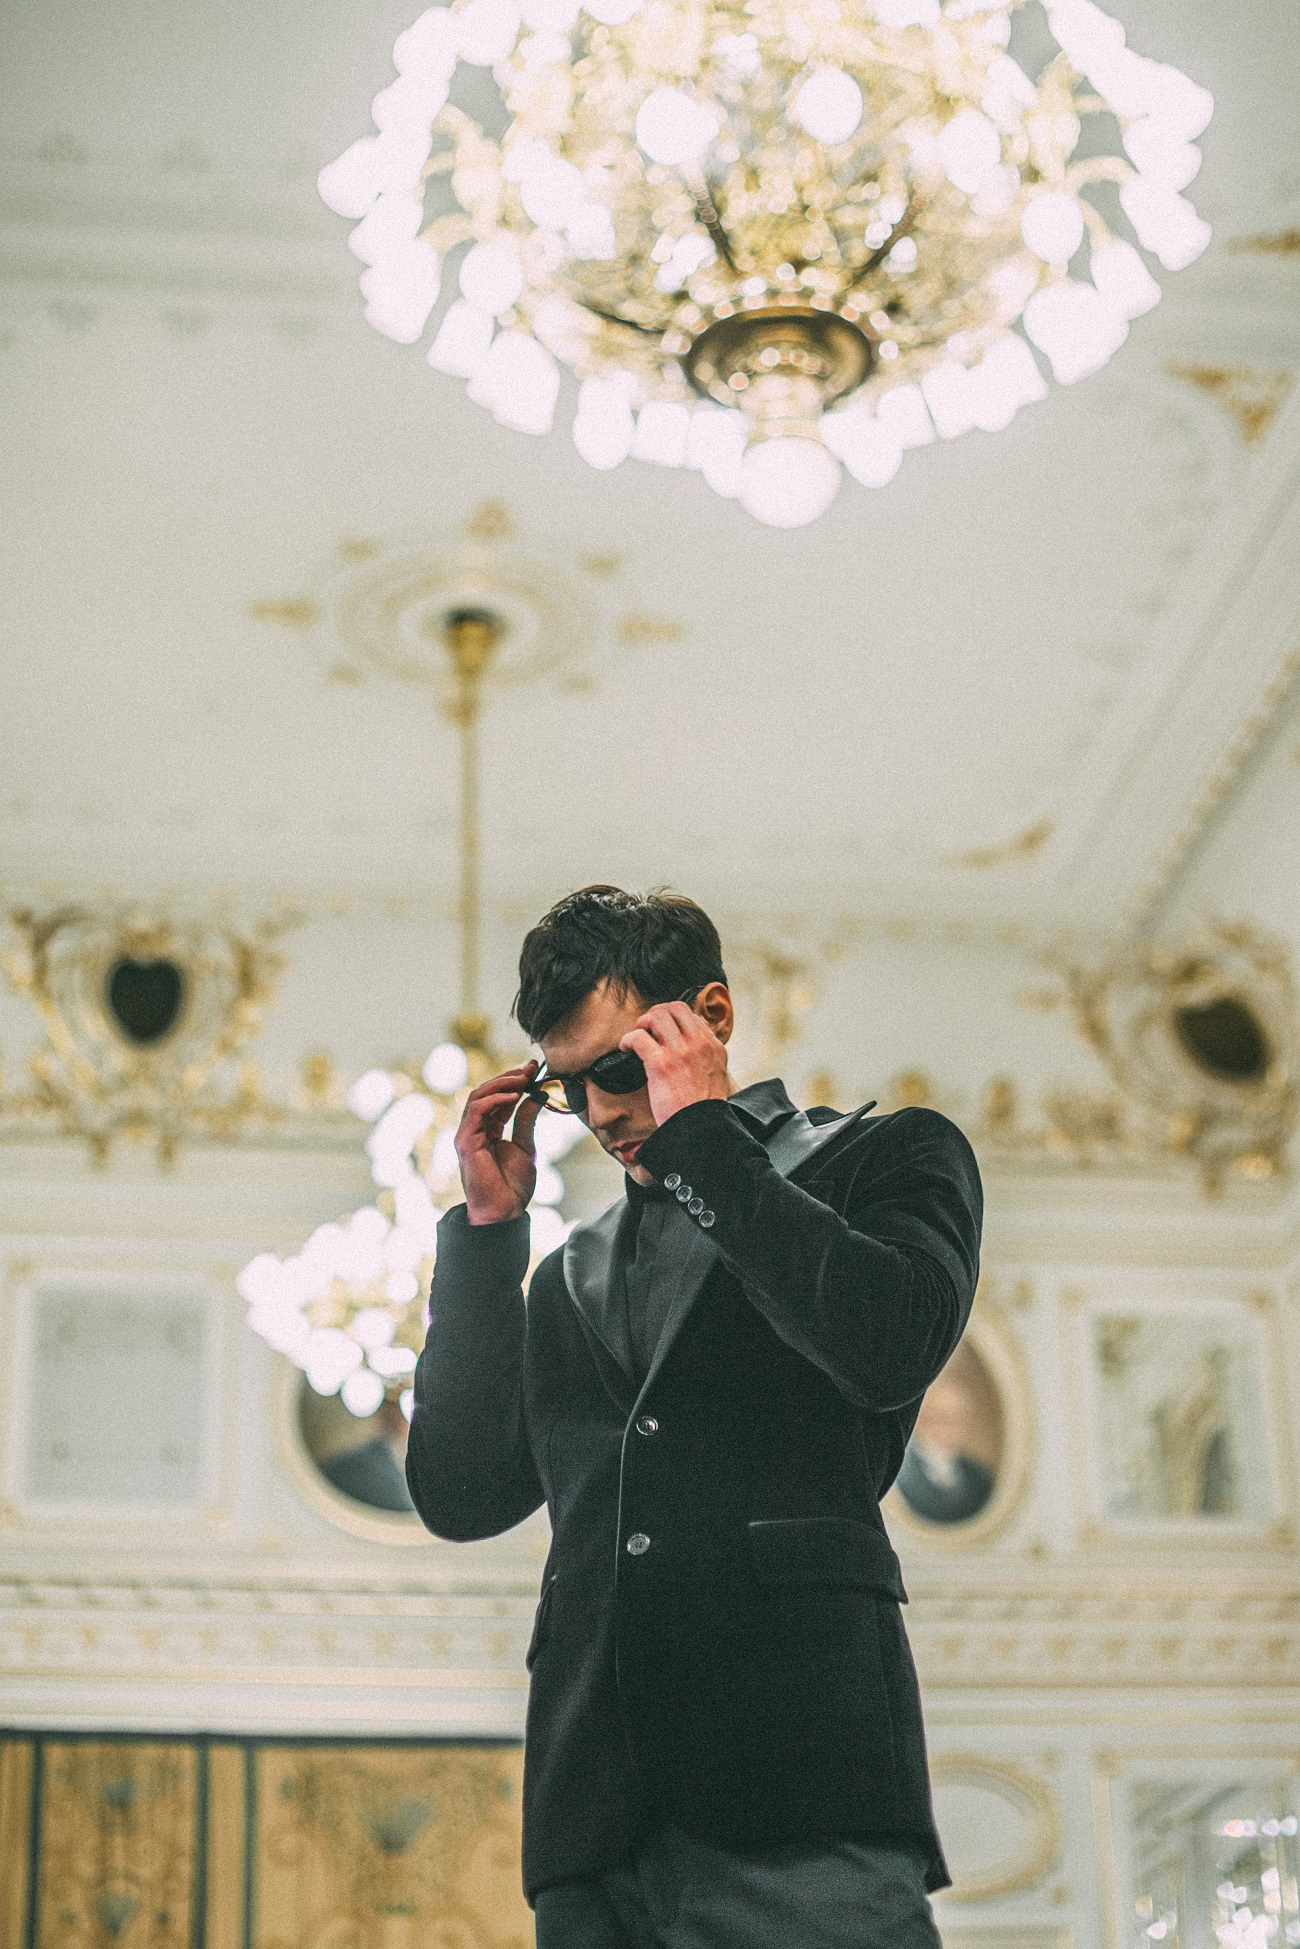 Vukota Brajovic by Marko Arsic at Corinthia Hotel Budapest 5